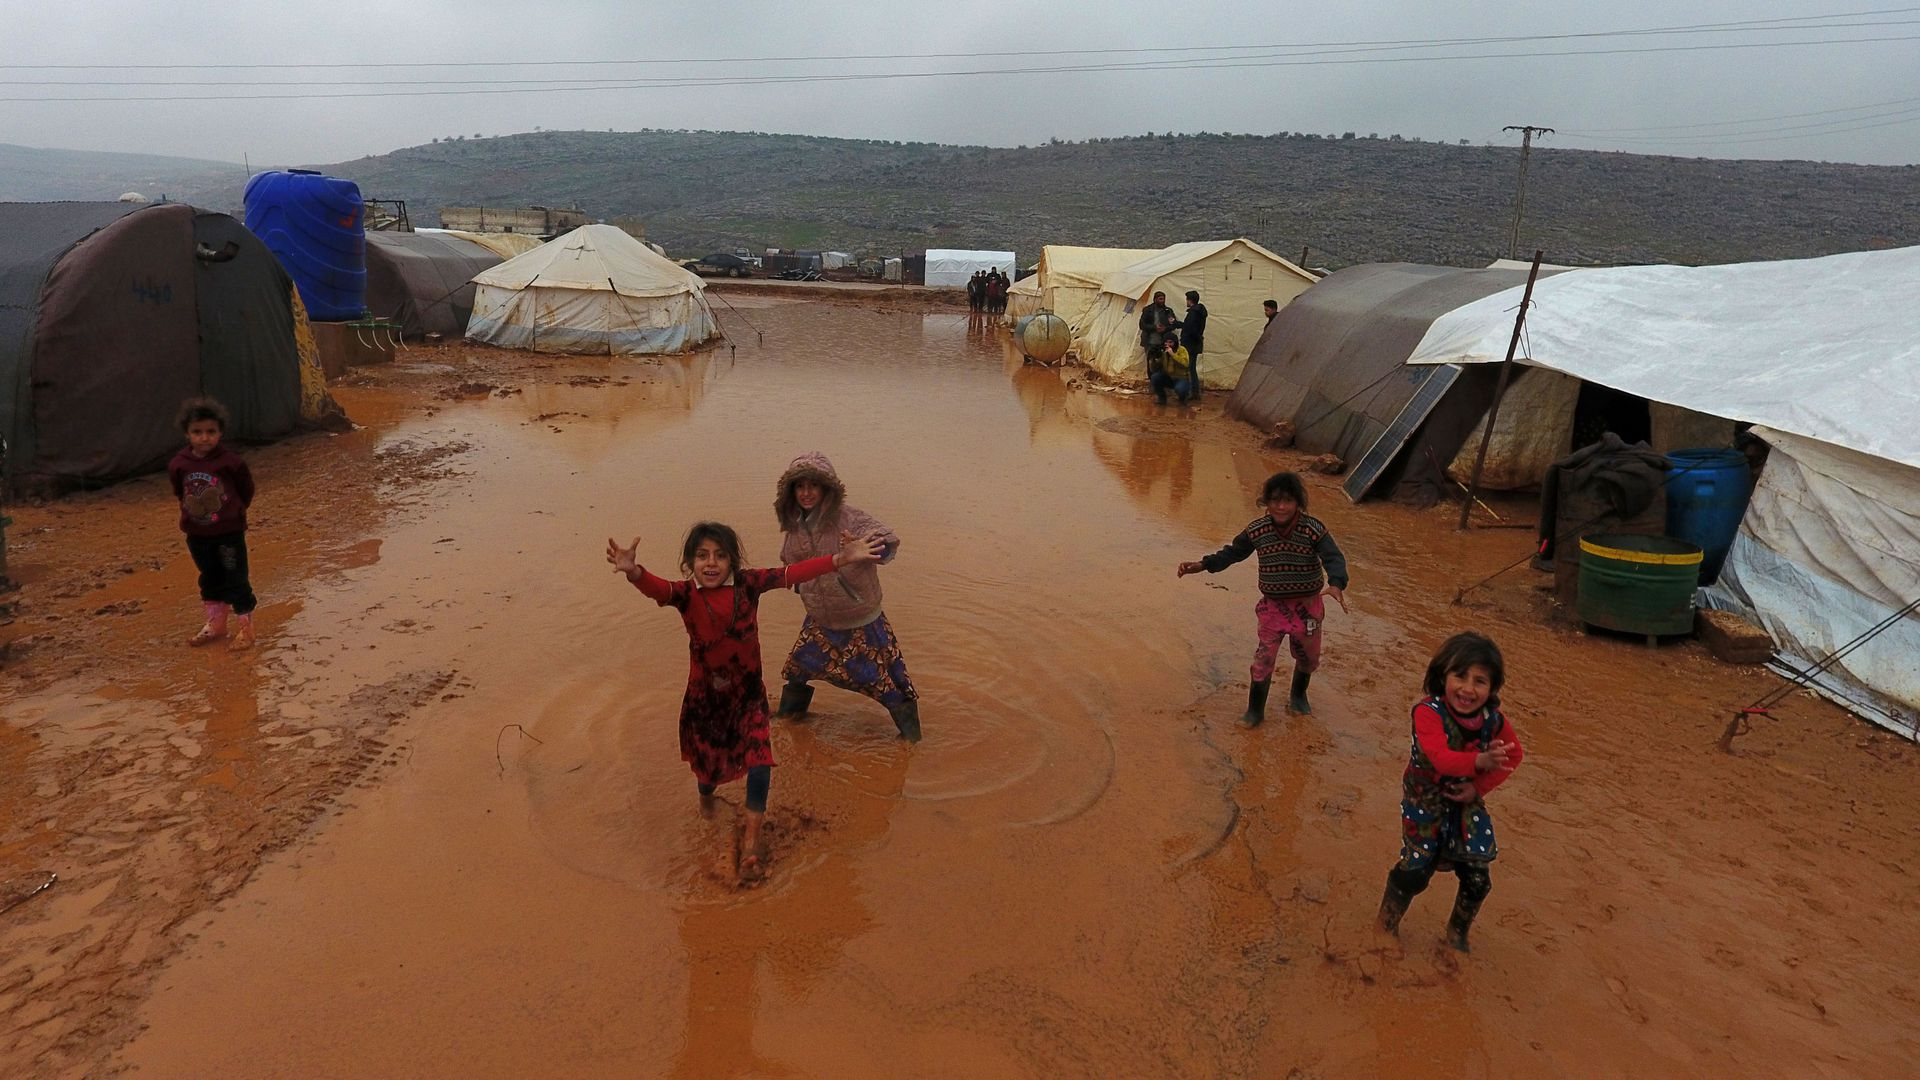 children playing in between tents on wet ground of refugee camp